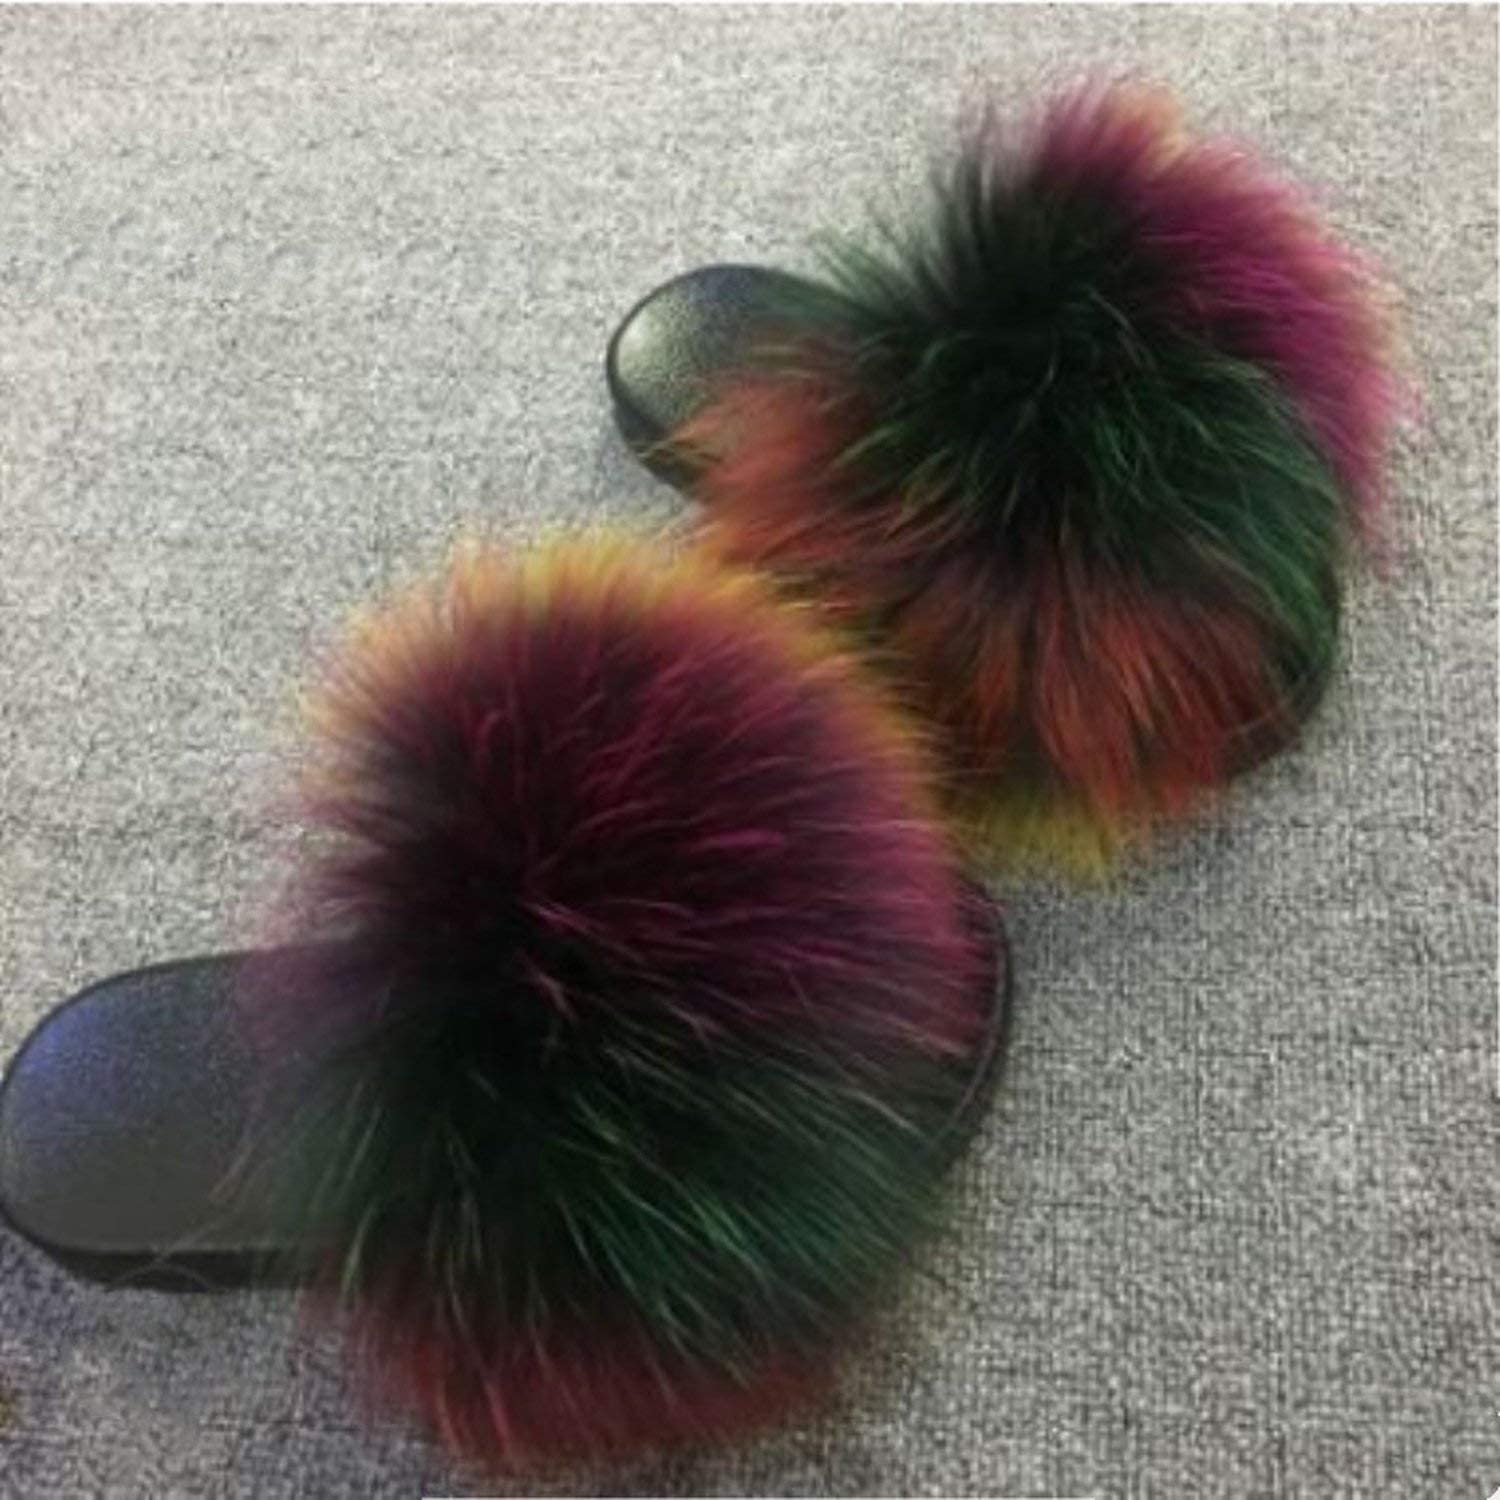 2019 Fox Fur Slide for Women Cut Slippers Fluffy Sliders Plush Furry Summer Flats Sweet Ladies Shoes Big Size 36-45,See as pic,6.5